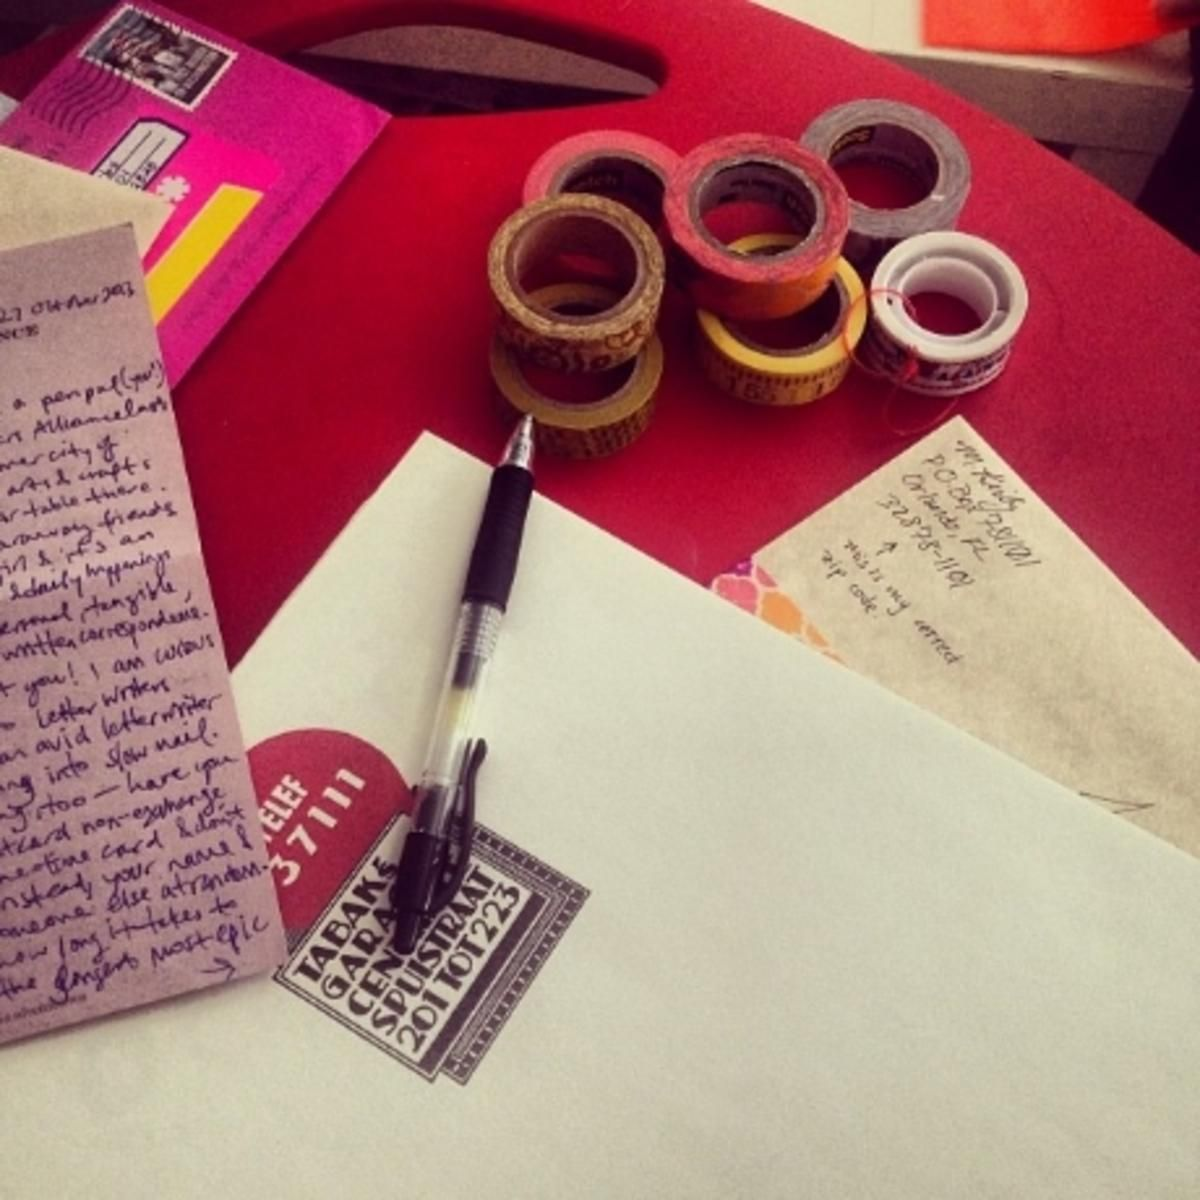 5 Ways To Send Mail And Get Mail In Return . I promise to write you back.